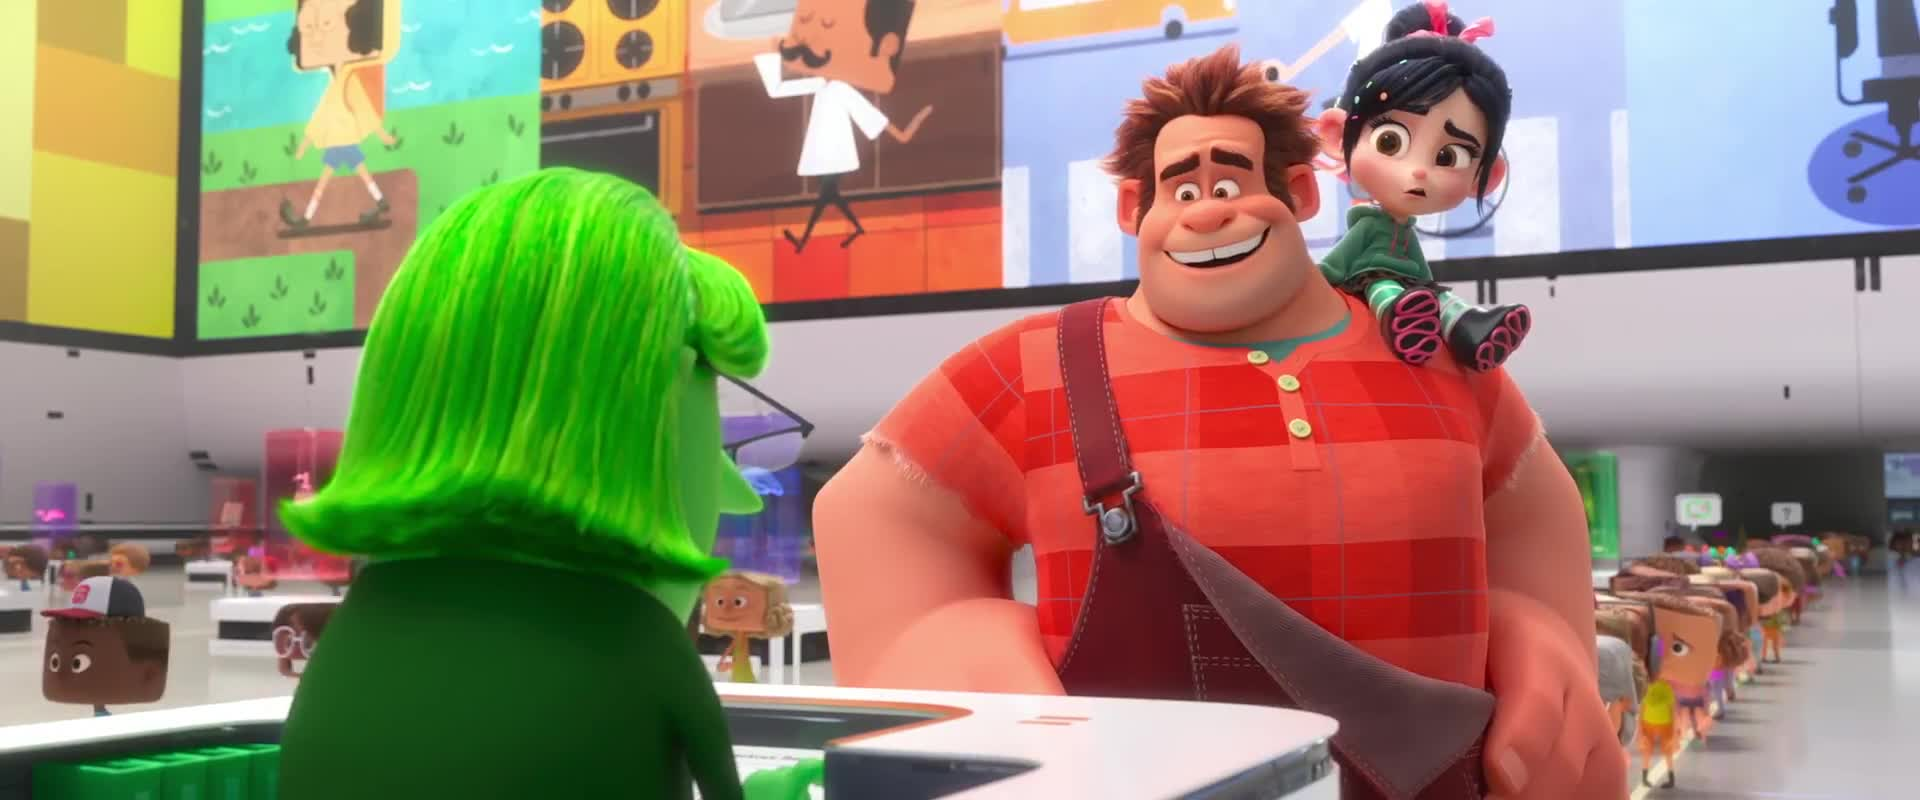 Ralph Breaks the Internet (2018) - IMDb